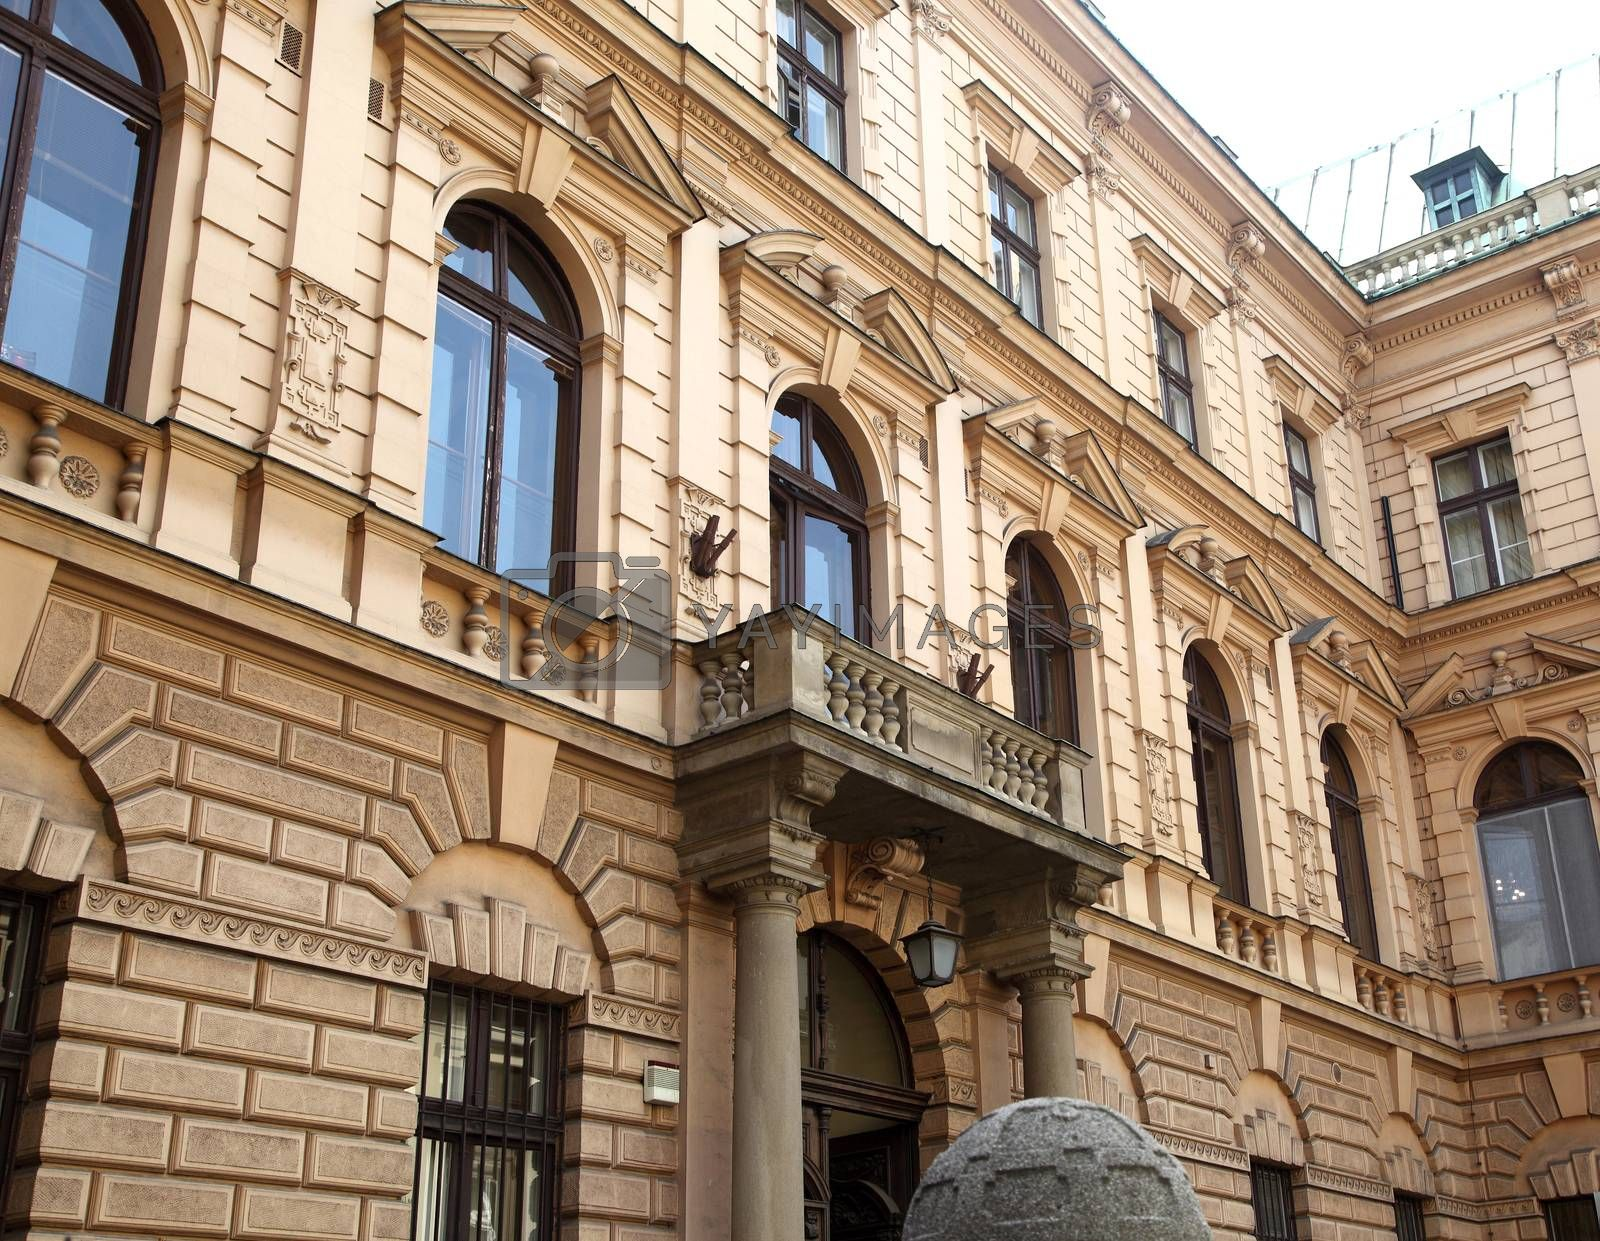 Pictured background of an old building in Krakow